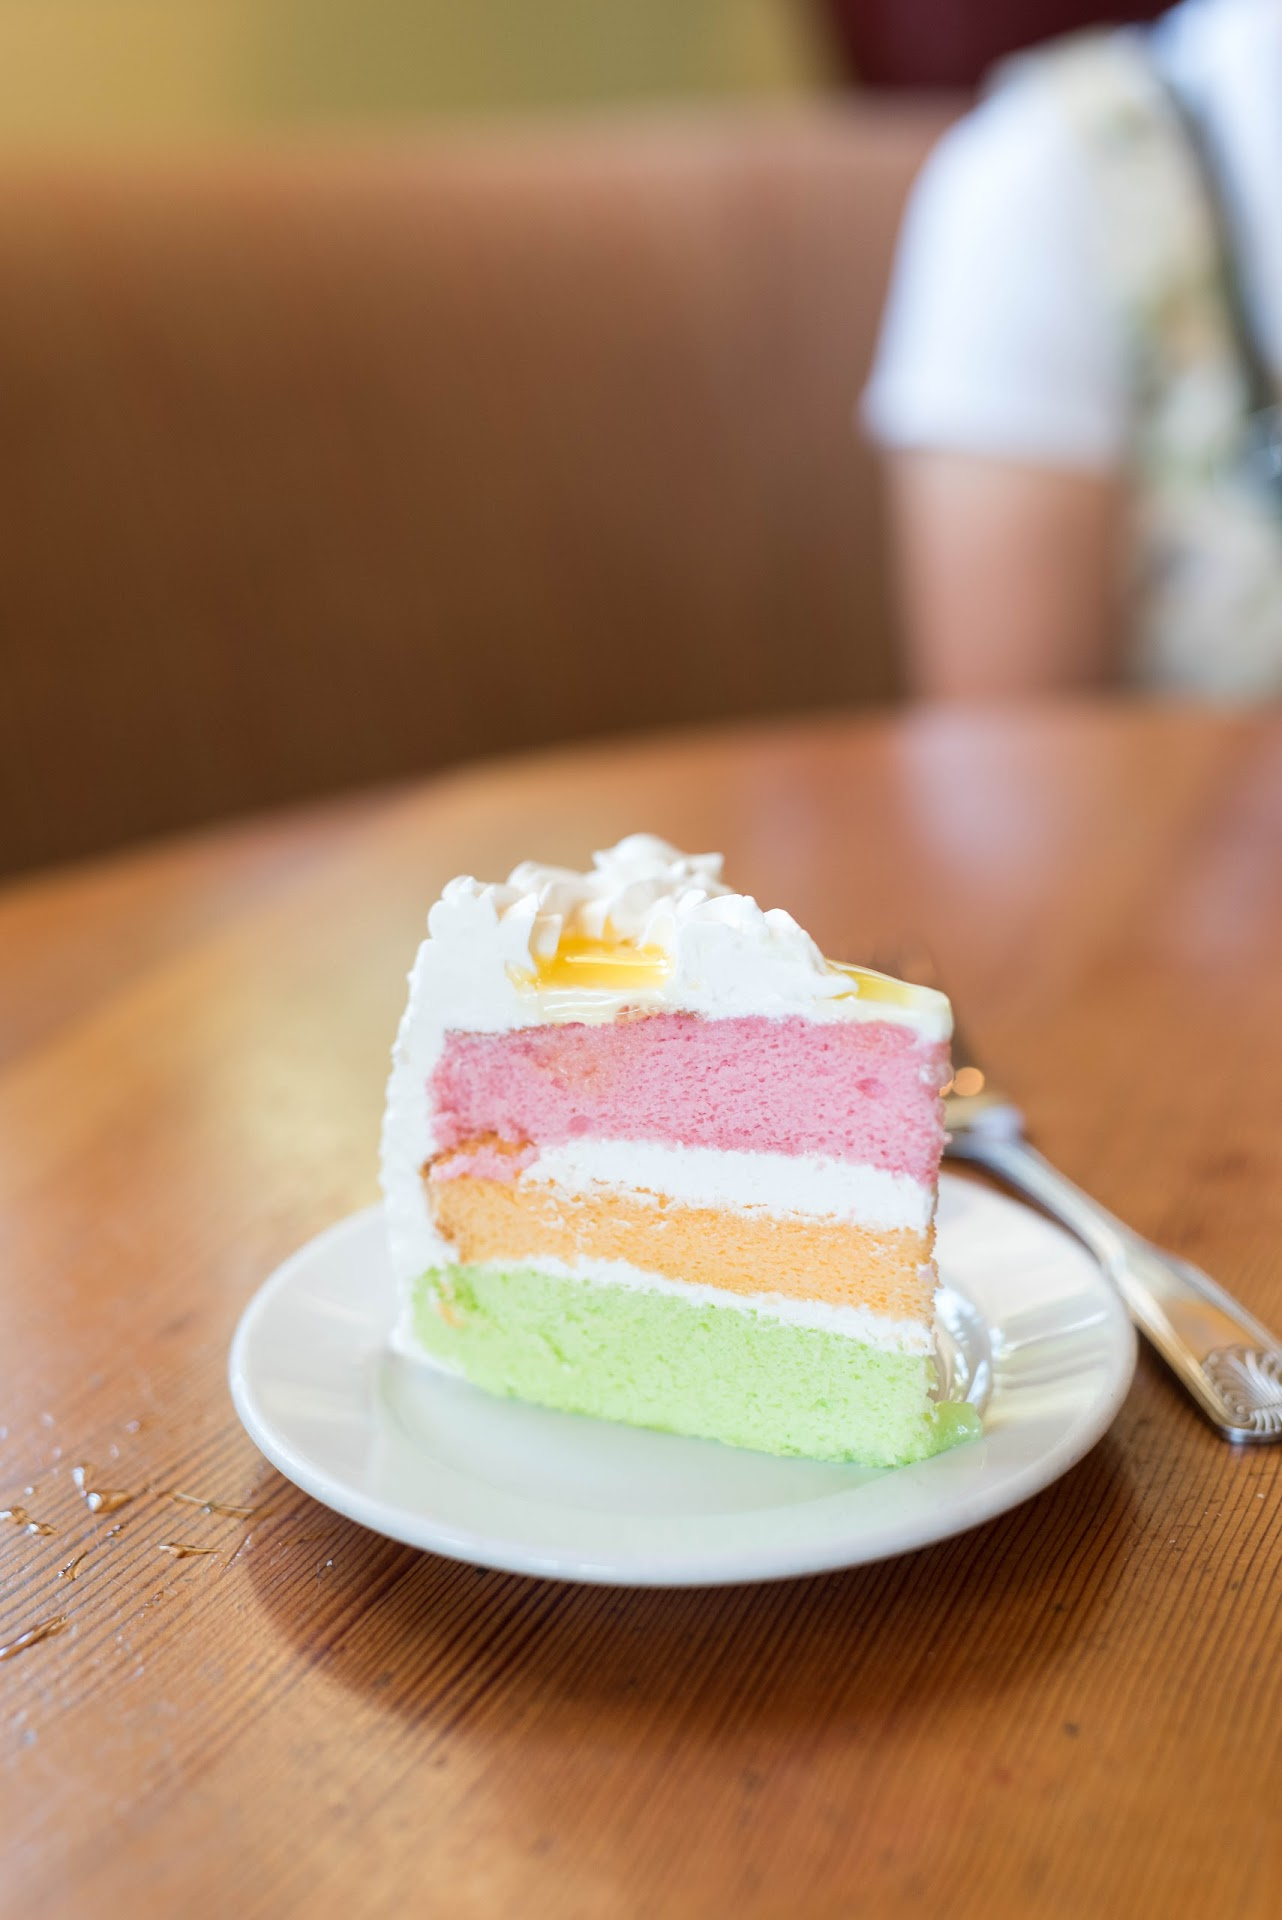 paradise cake, guava, lime, passion fruit, lilikoi, rainbow cake, layered, hawaiian bakery, best food in torrance, southern california, review, best restaurant, bakery,